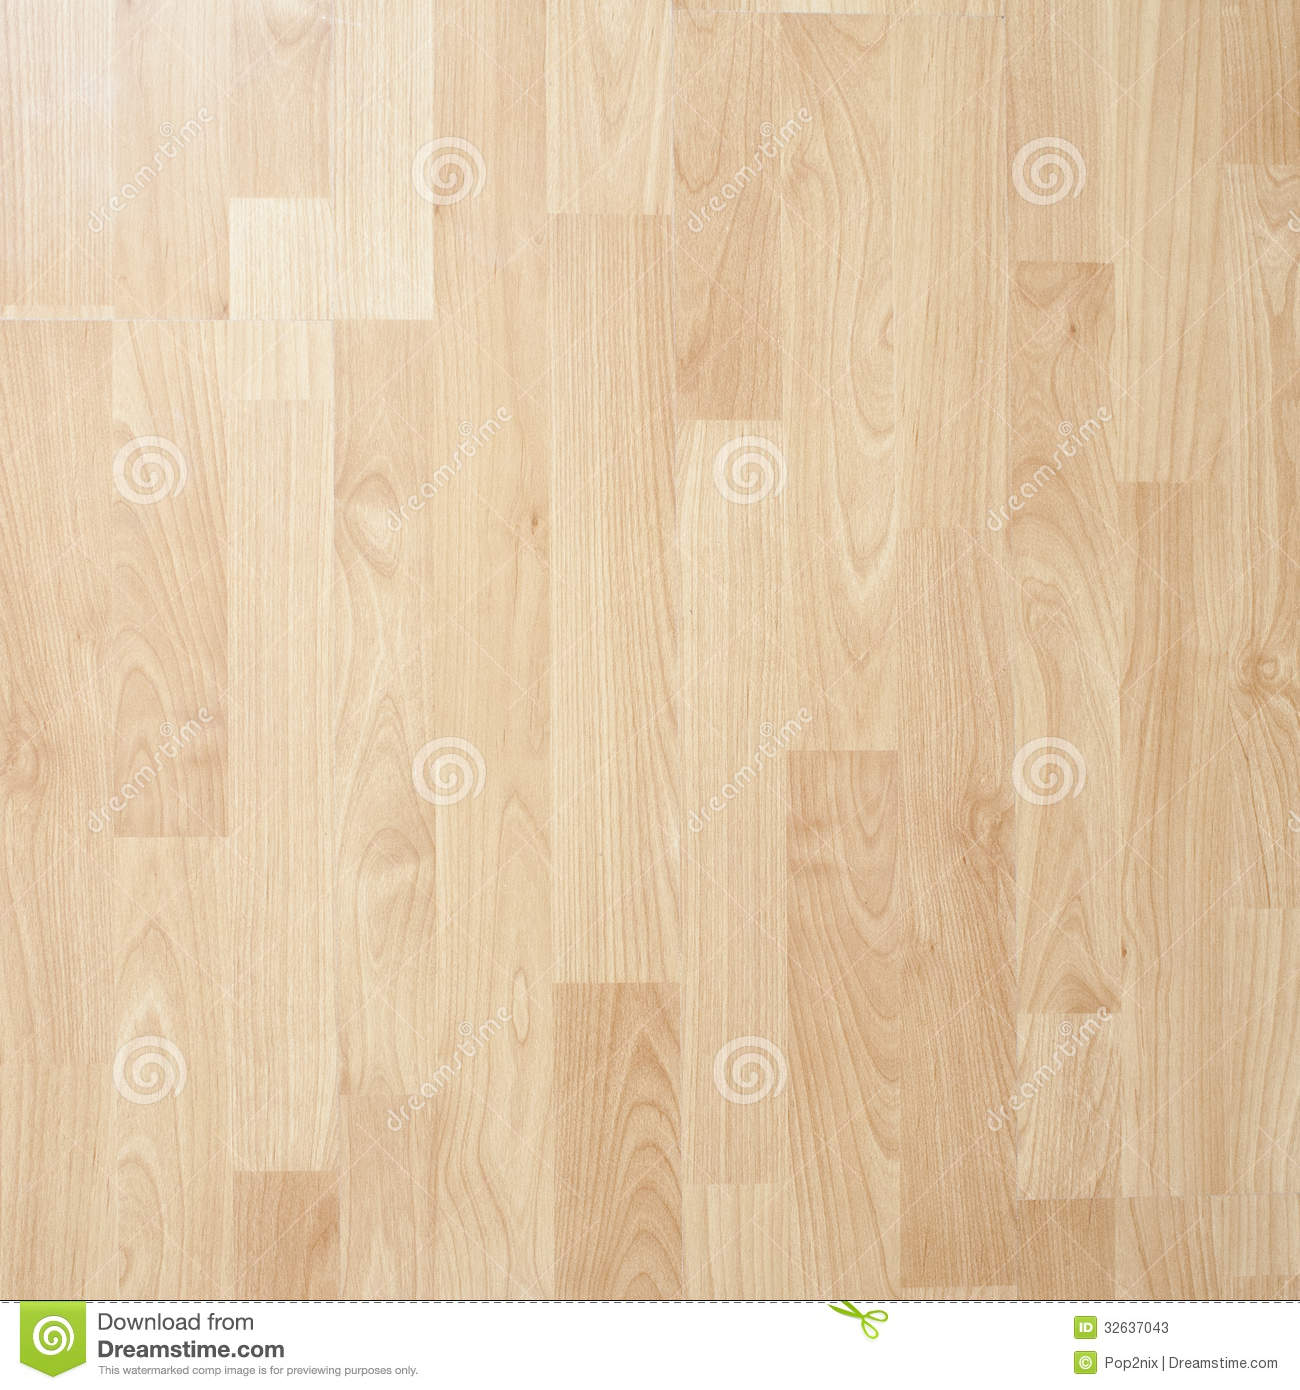 Wood Tile Texture Background Stock Photos Image 32637043